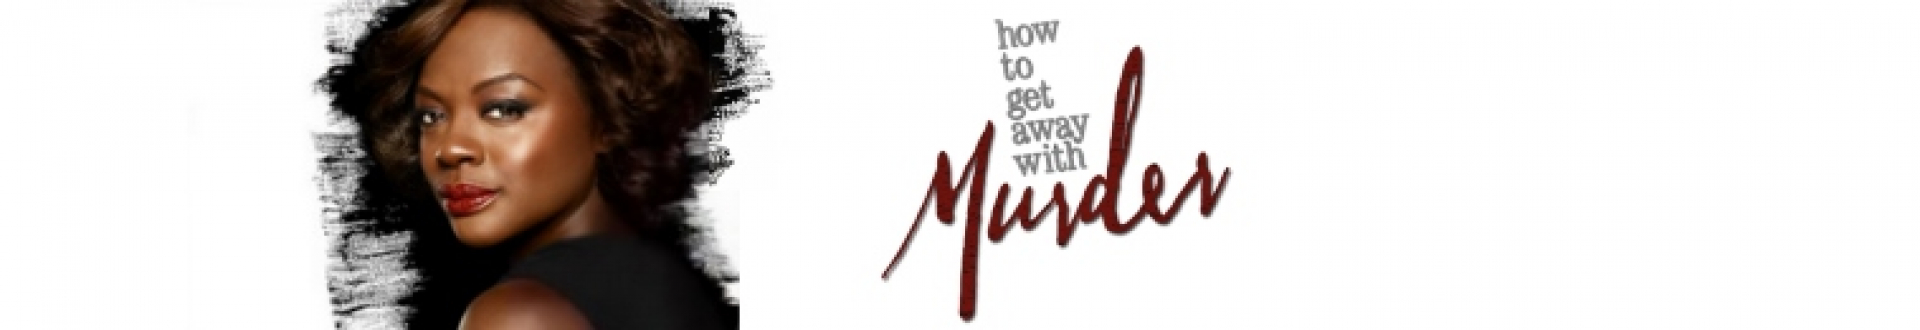 Image illustrative de How to Get Away with Murder